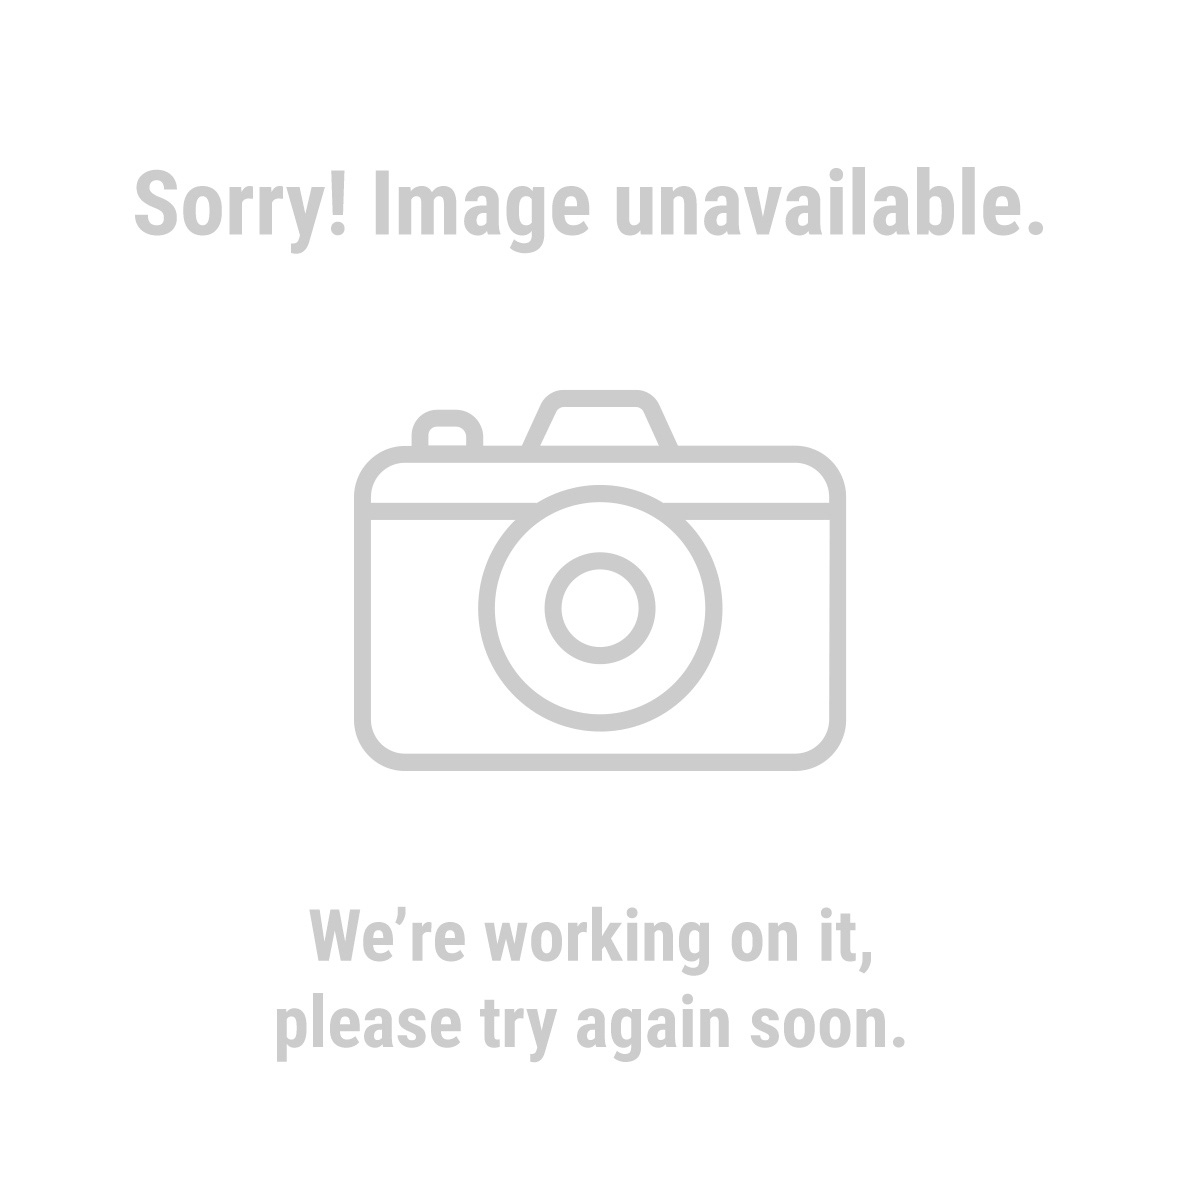 Pittsburgh® 8832 3 Piece Three-Jaw Puller Set